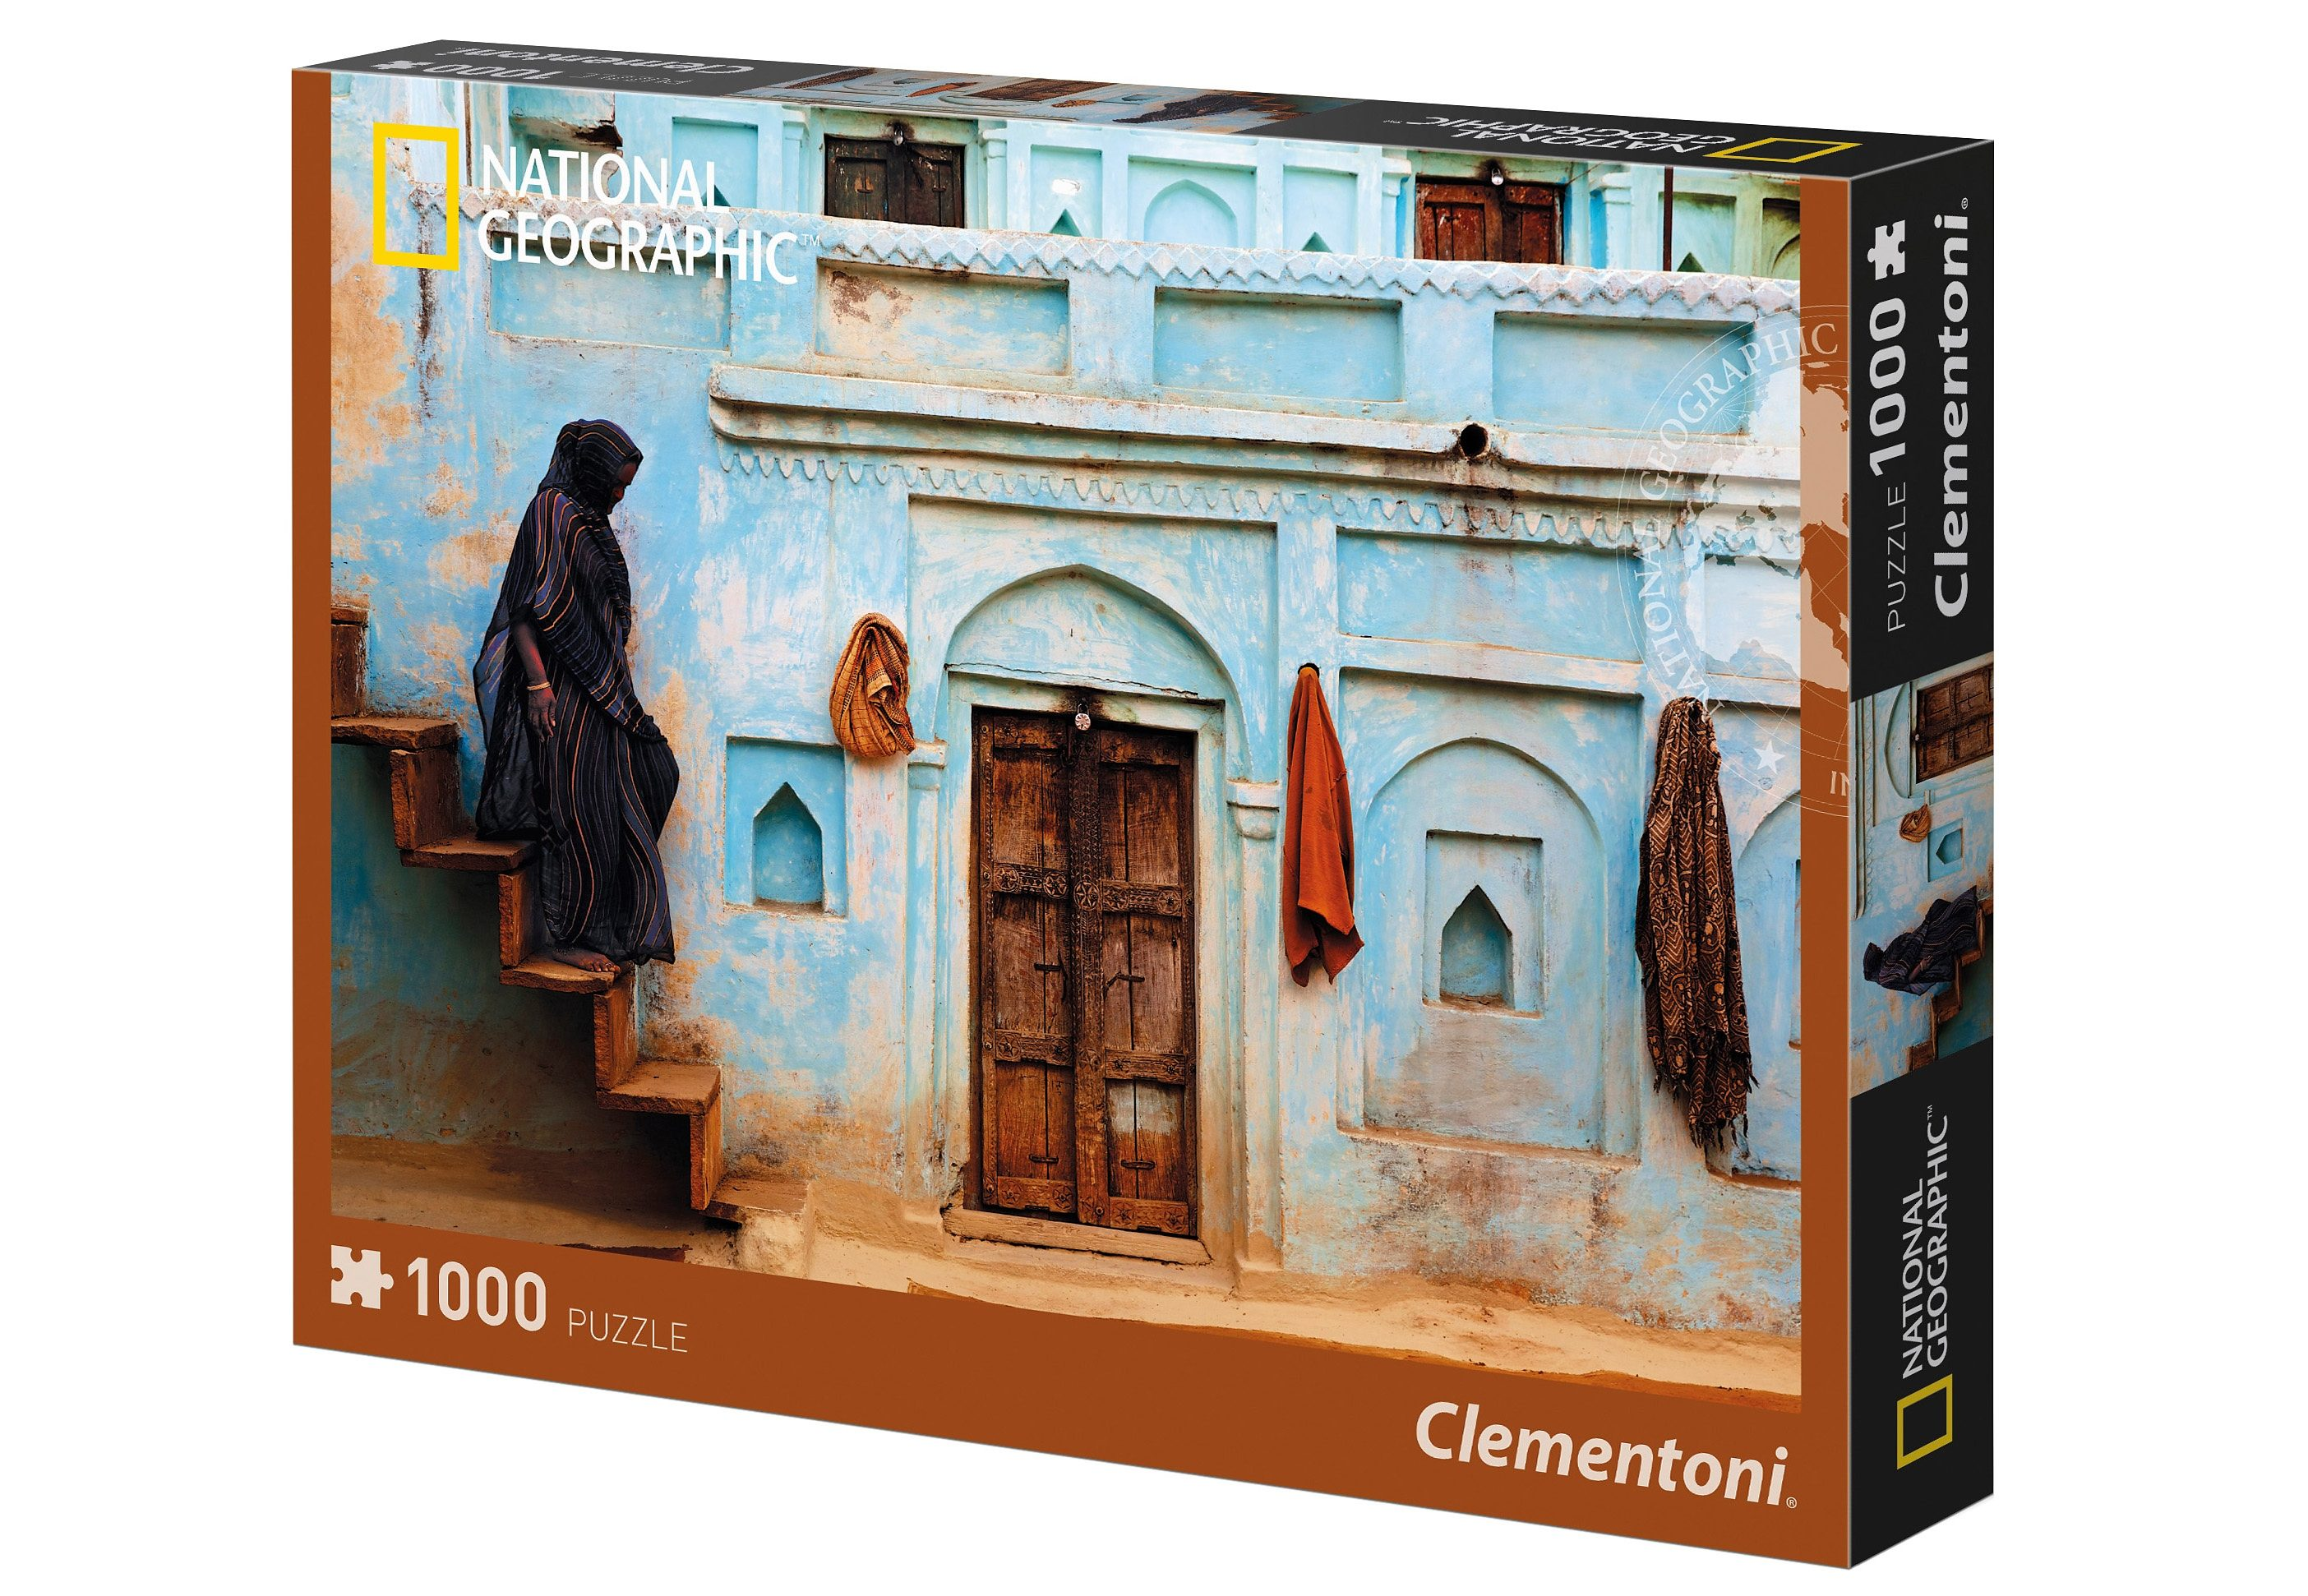 Clementoni Puzzle, 1000 Teile, »National Geographic - Pastell Fassade«